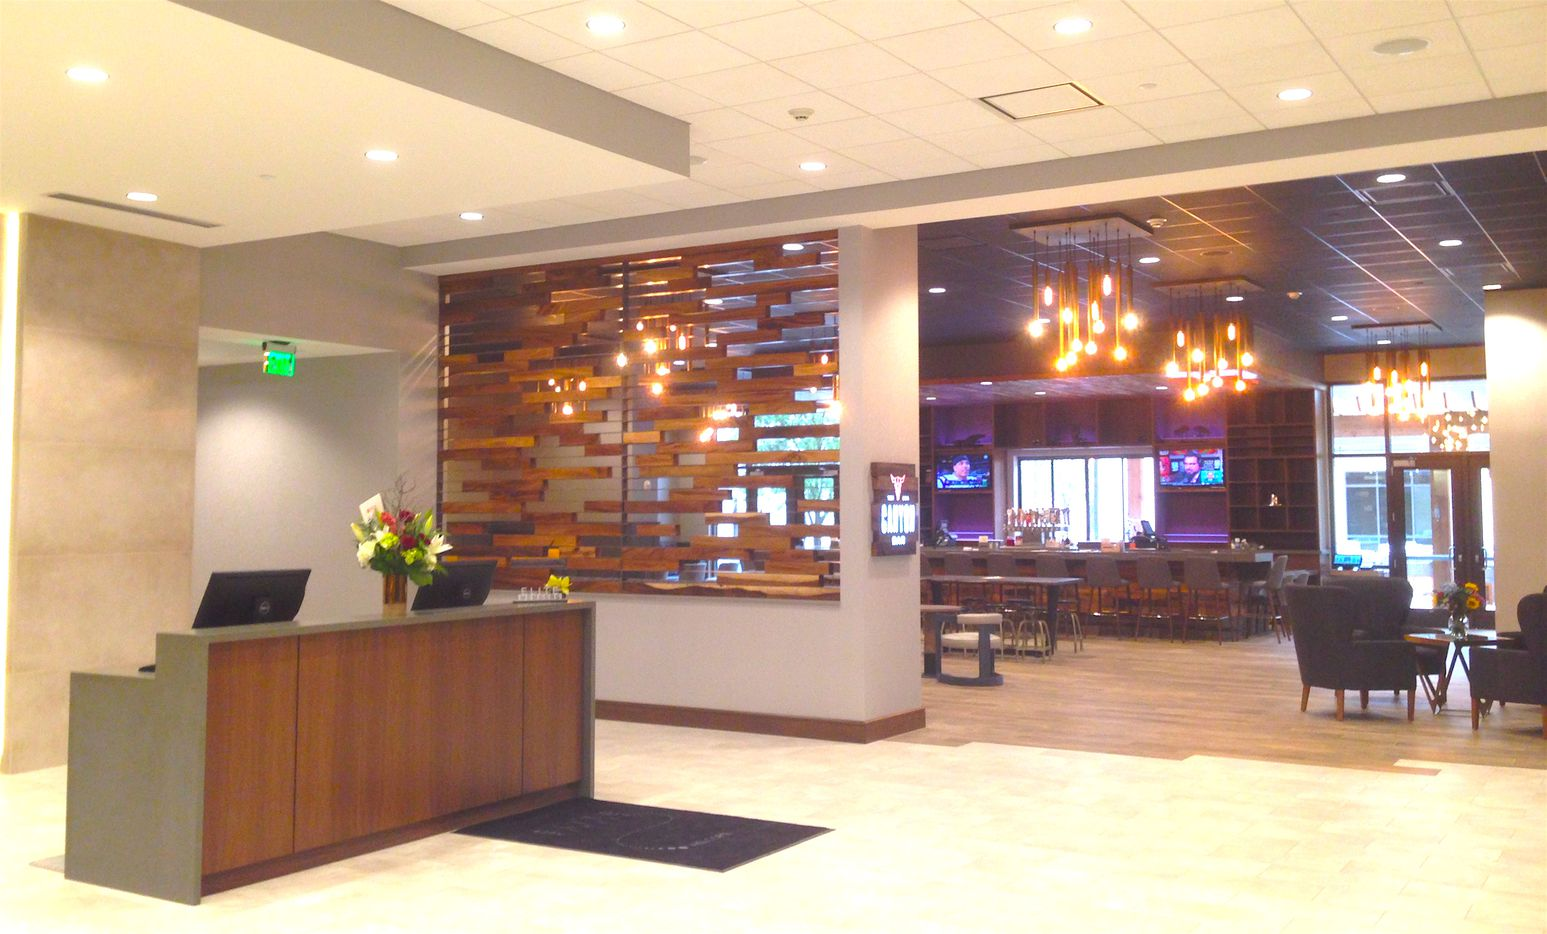 The new Delta by Marriott Hotel has a restaurant by Dallas chef Stephan Pyles.